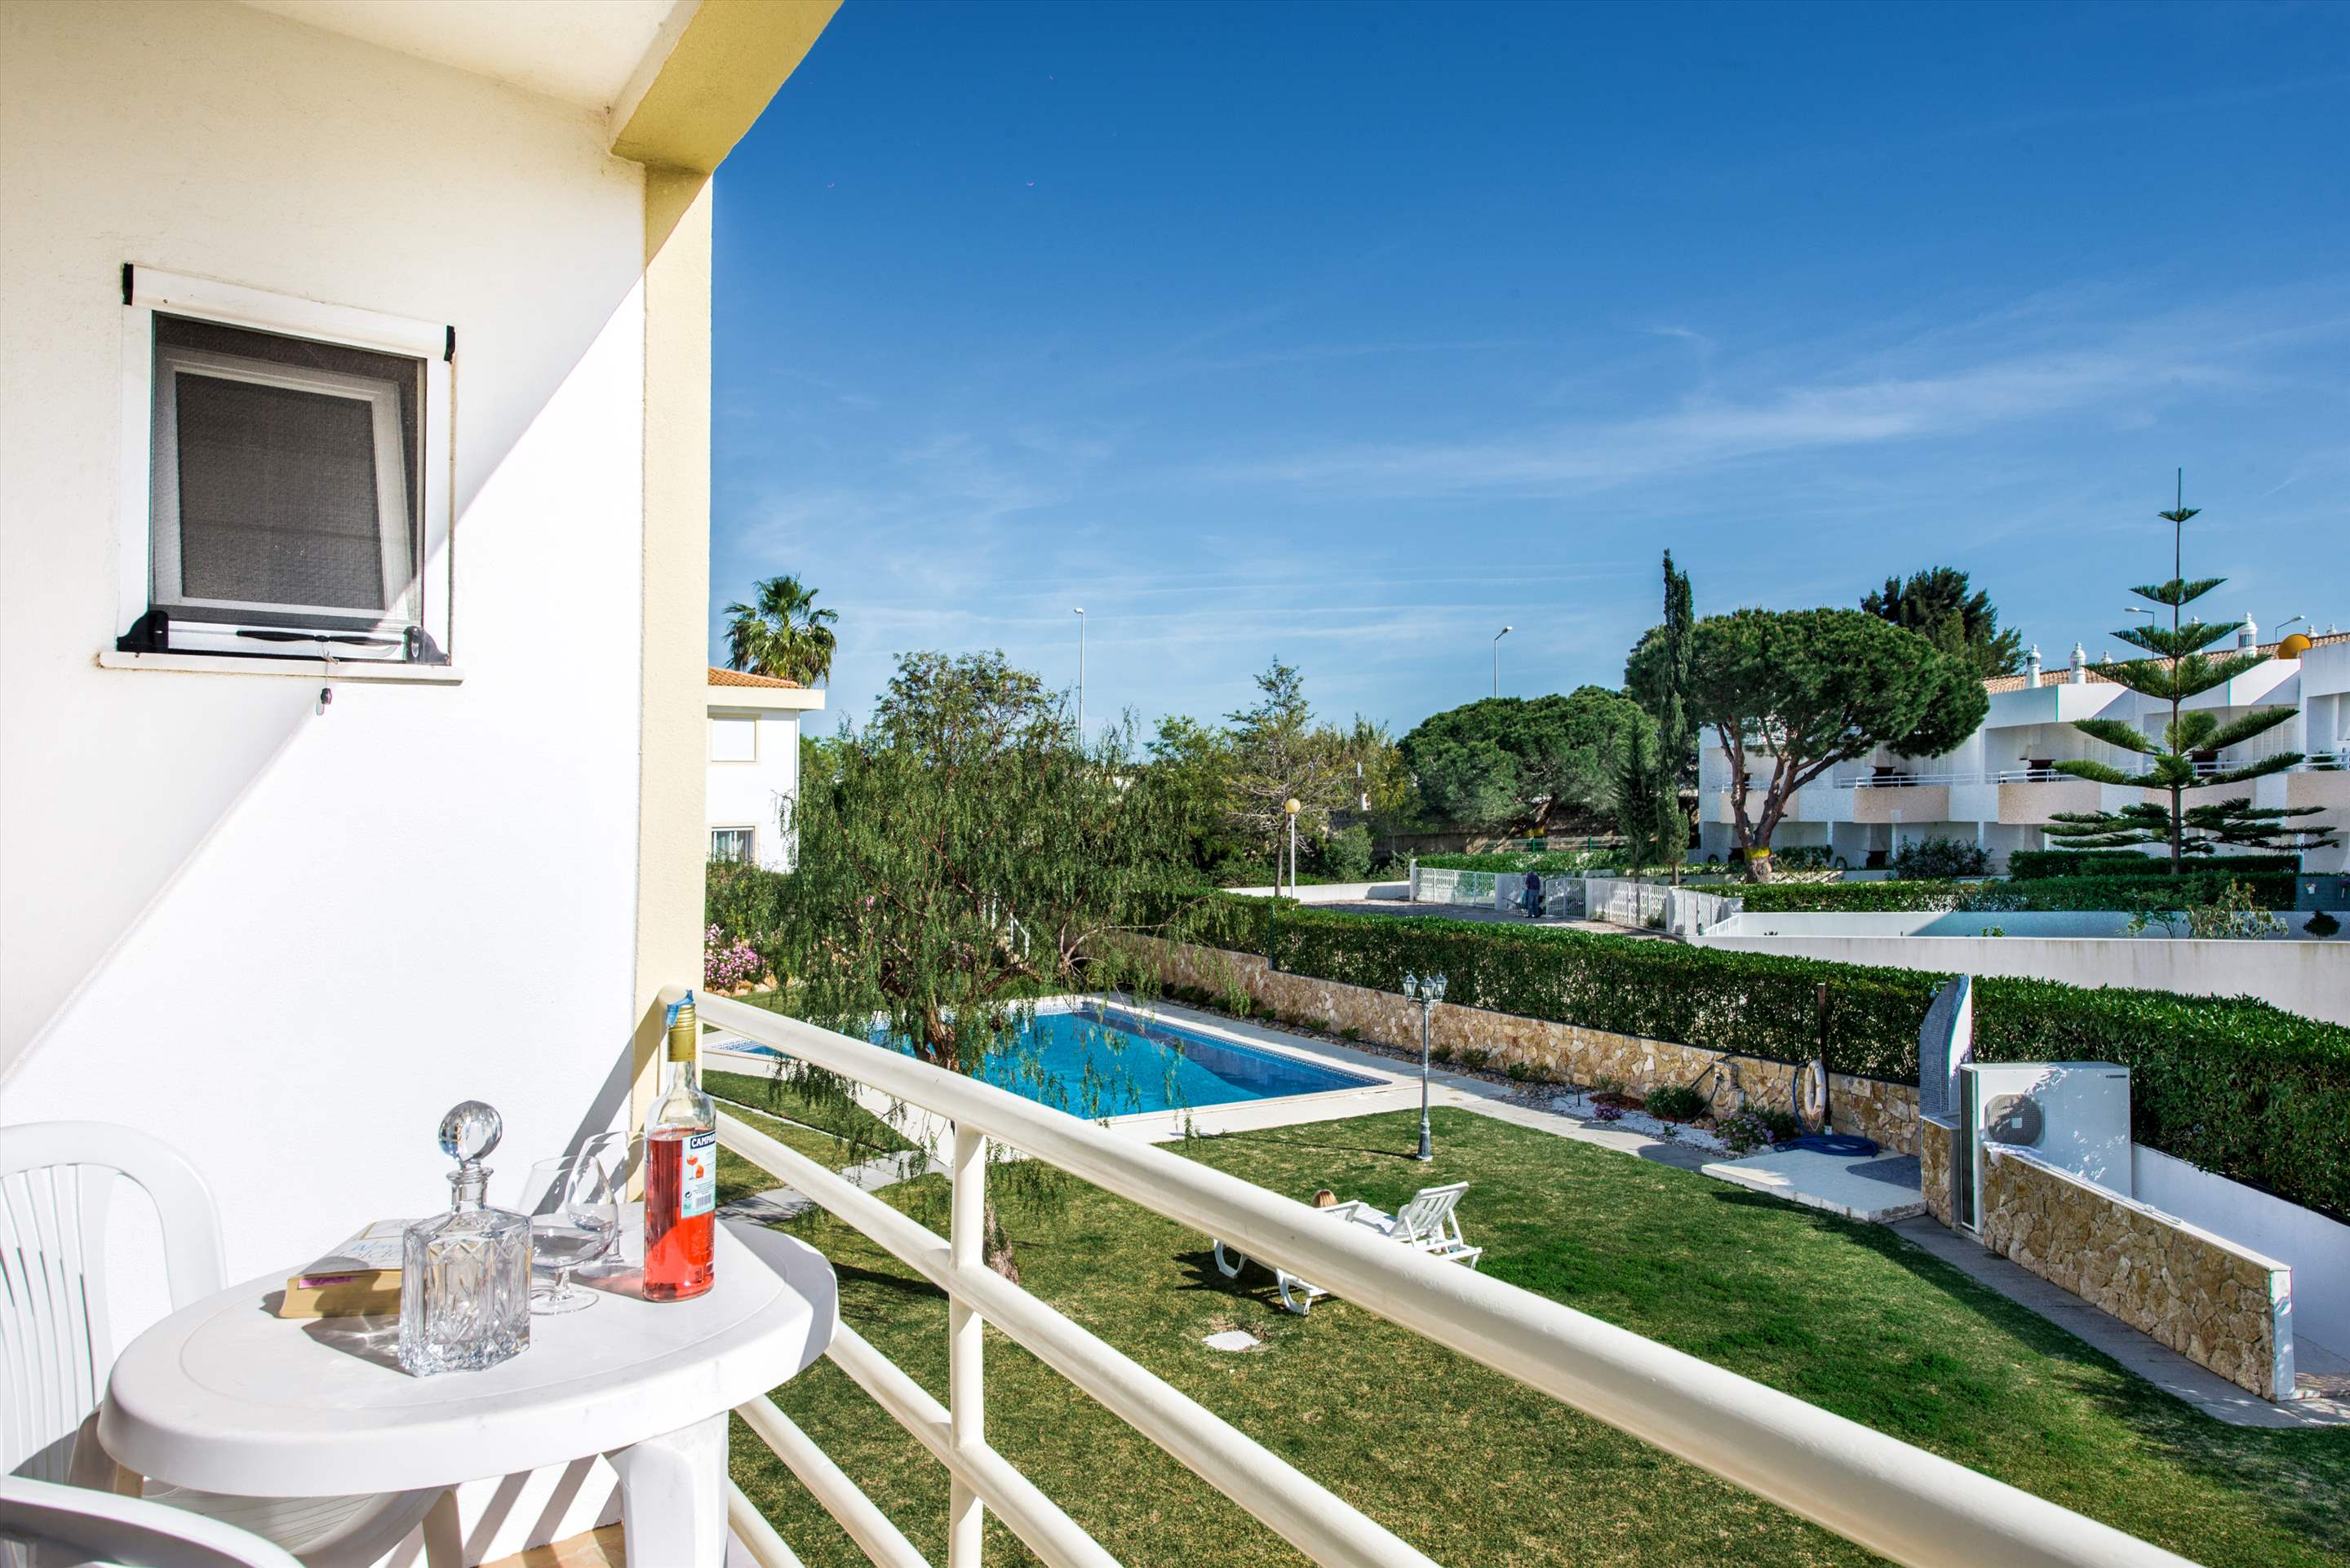 Apt 1E Gale Garden, For 5-6 Persons, 3 bedroom apartment in Gale, Vale da Parra and Guia, Algarve Photo #3